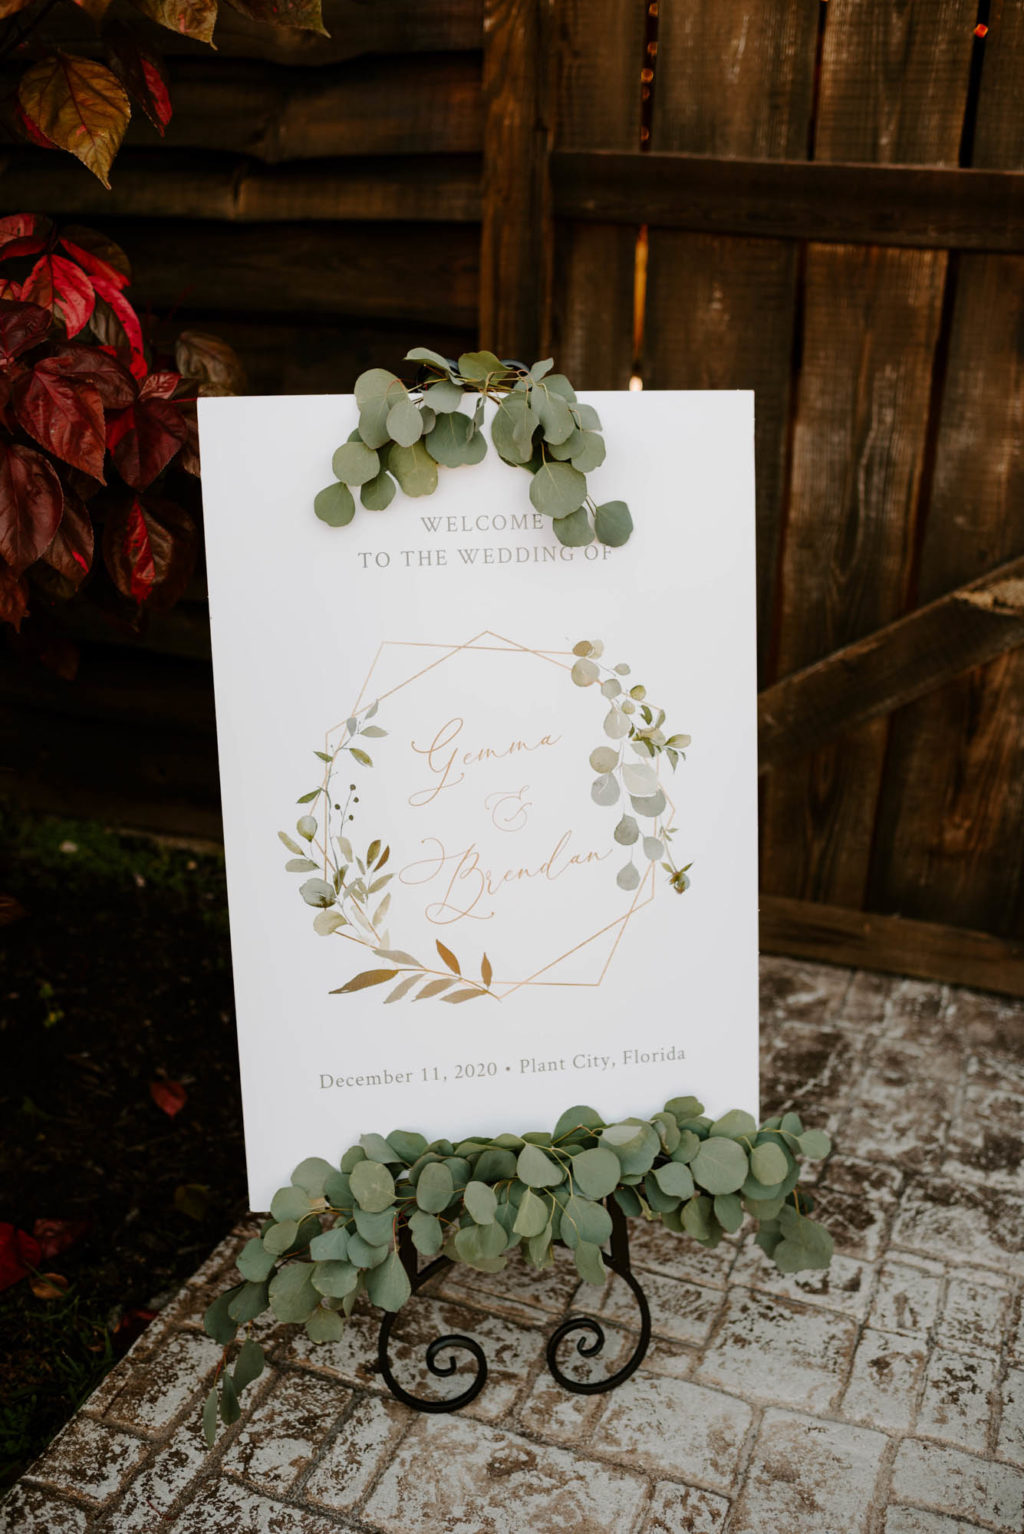 Wedding Welcome Sign with Eucalyptus Greenery Garland easel and Gold Geometric and Greenery Motif